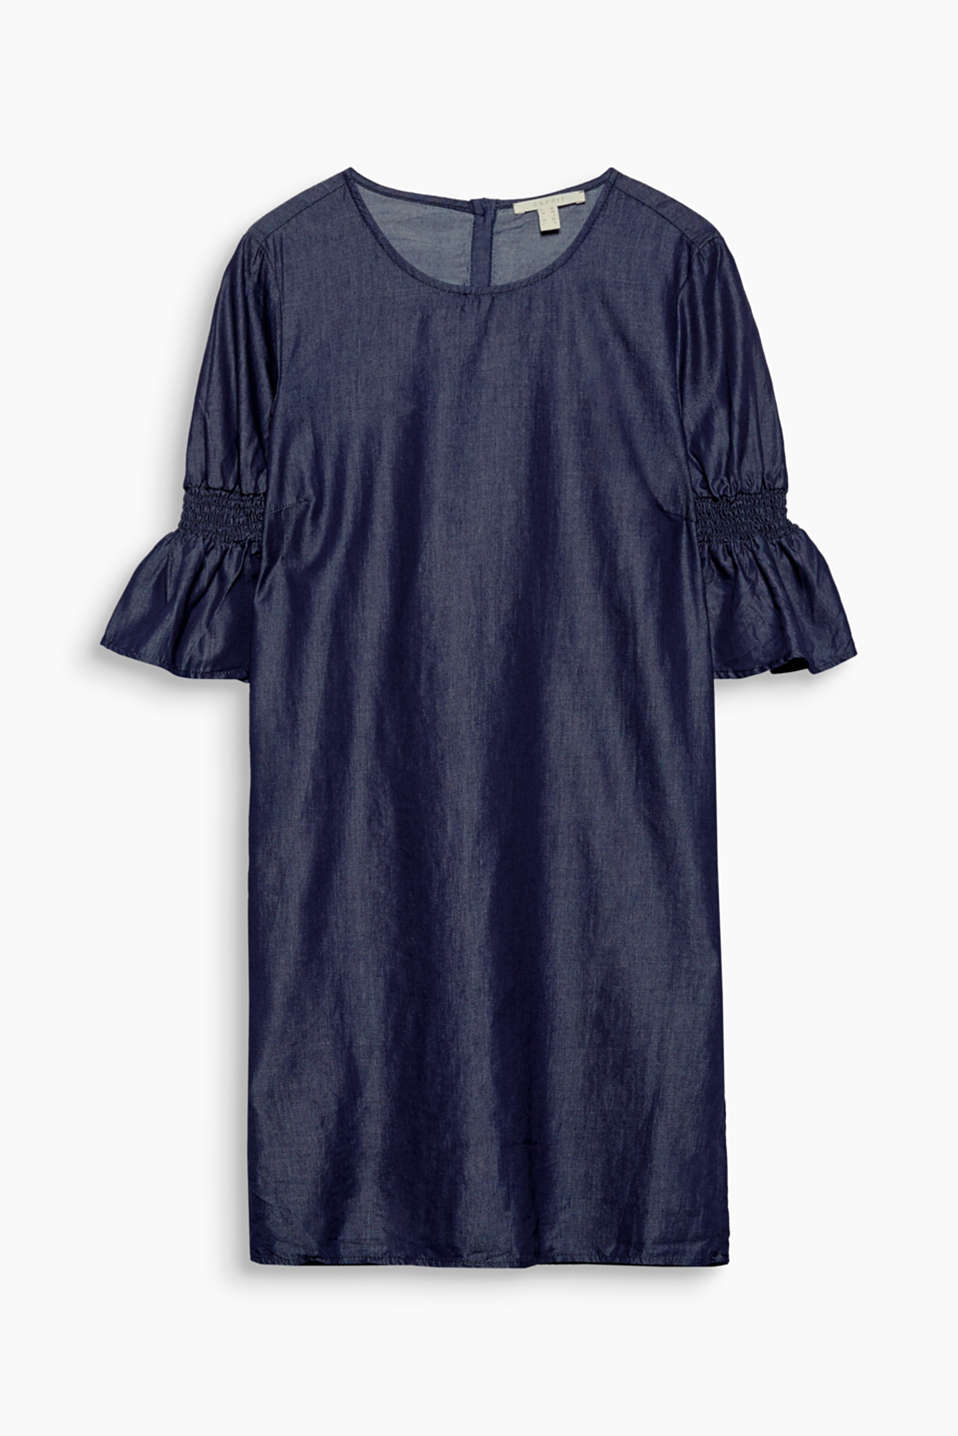 Shimmering denim dress with flounce sleeves, cotton blend